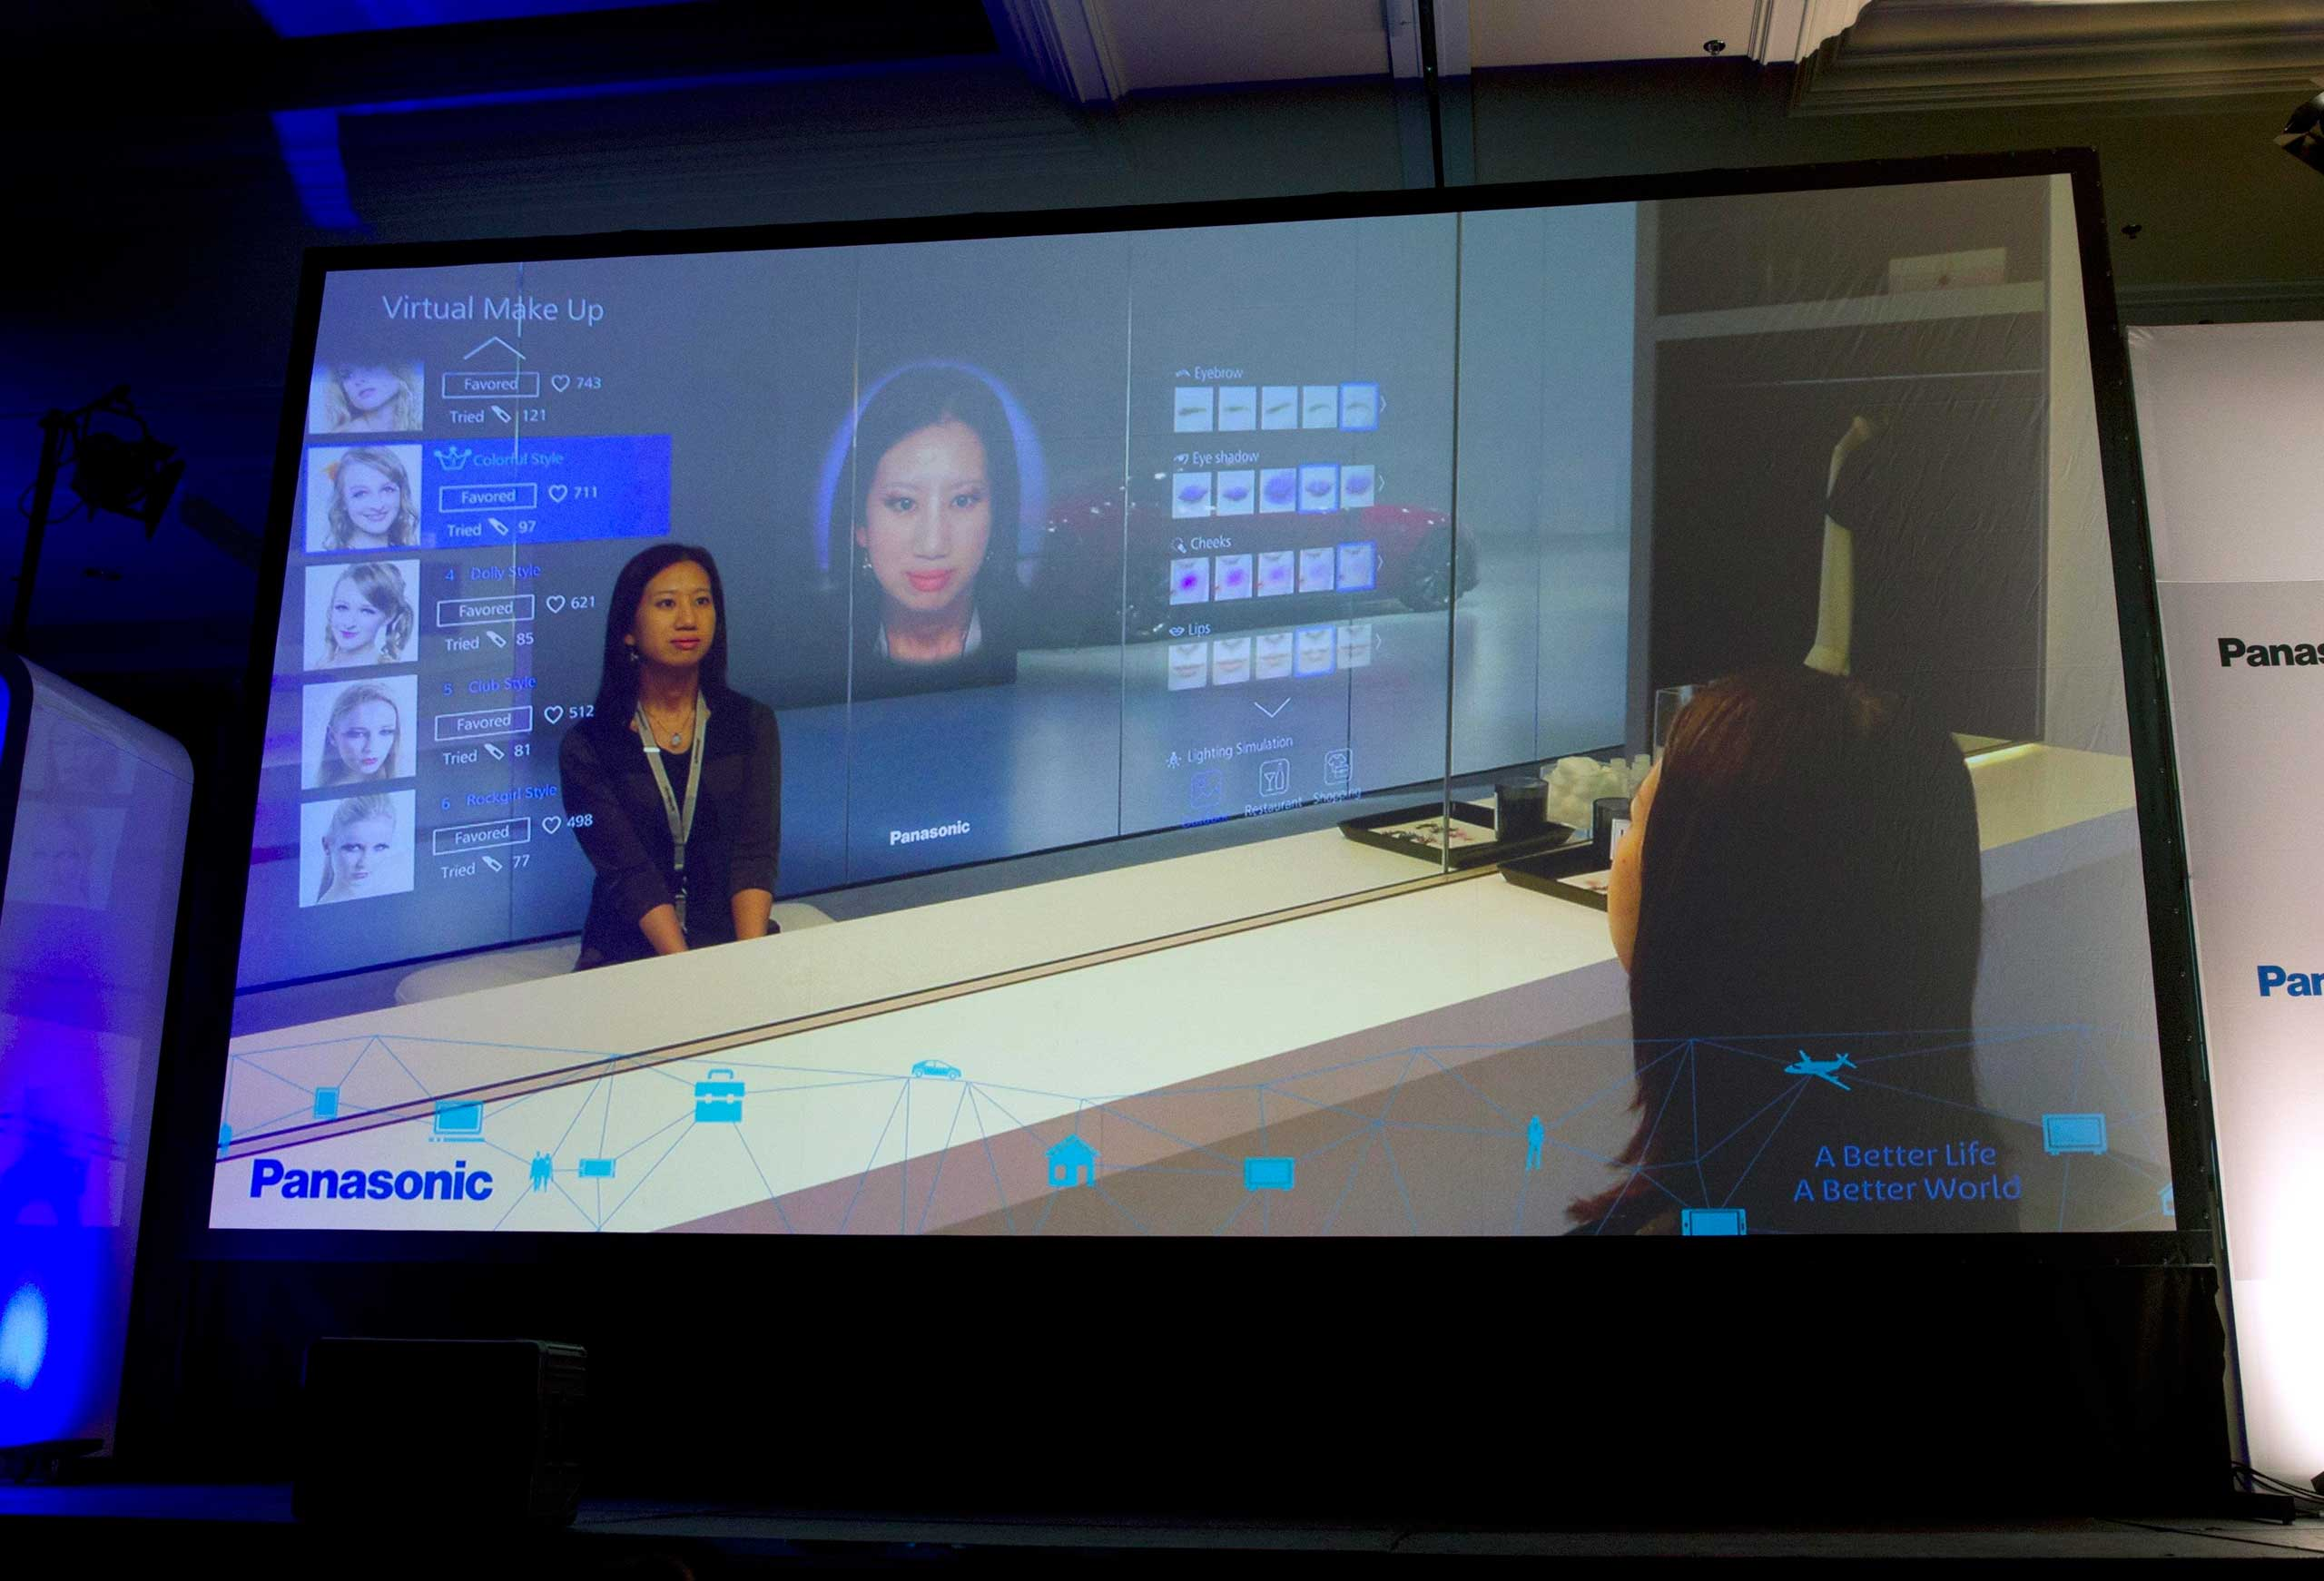 A display shows Panasonic's virtual make-up mirror at a Panasonic news conference on Jan. 5 , 2015.